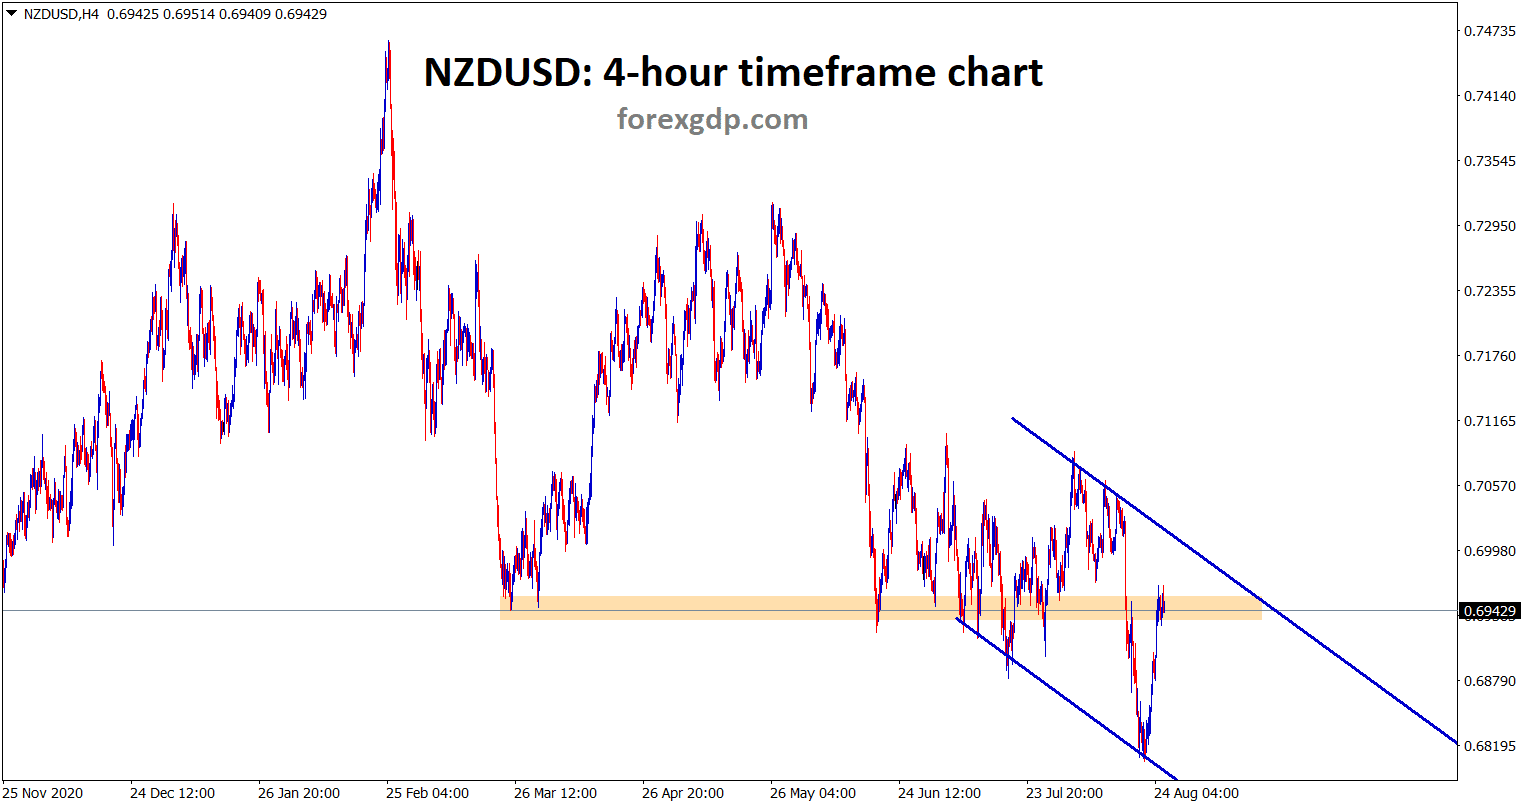 NZDUSD is also retesting the previous support wait for the confirmation of up or downward movement